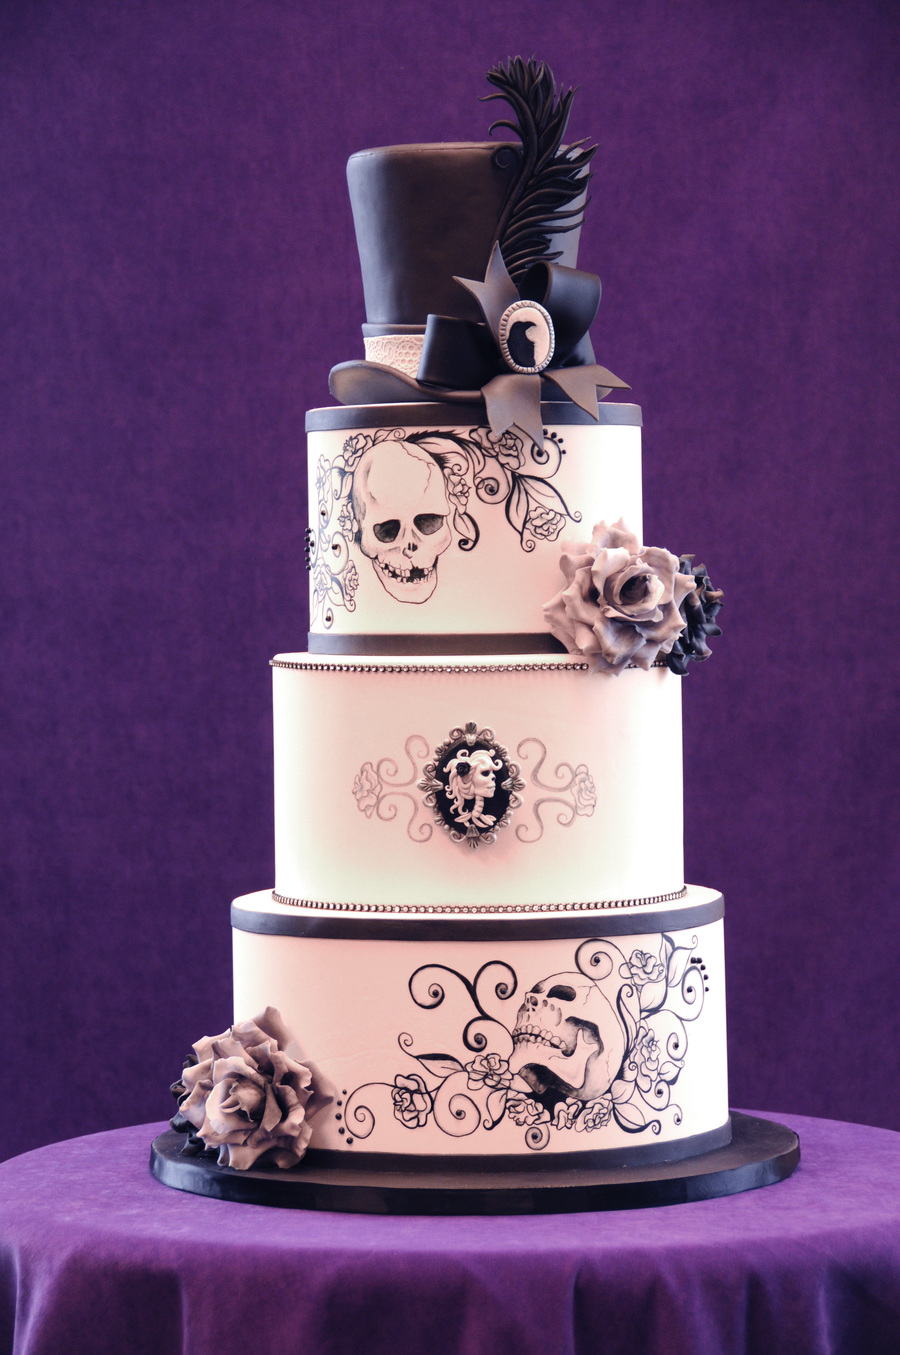 I Truly Loved Making This Cake All Of The Elements Are Completely My Style I Hand Painted The Designs With Americolor Super Black And Al on Cake Central